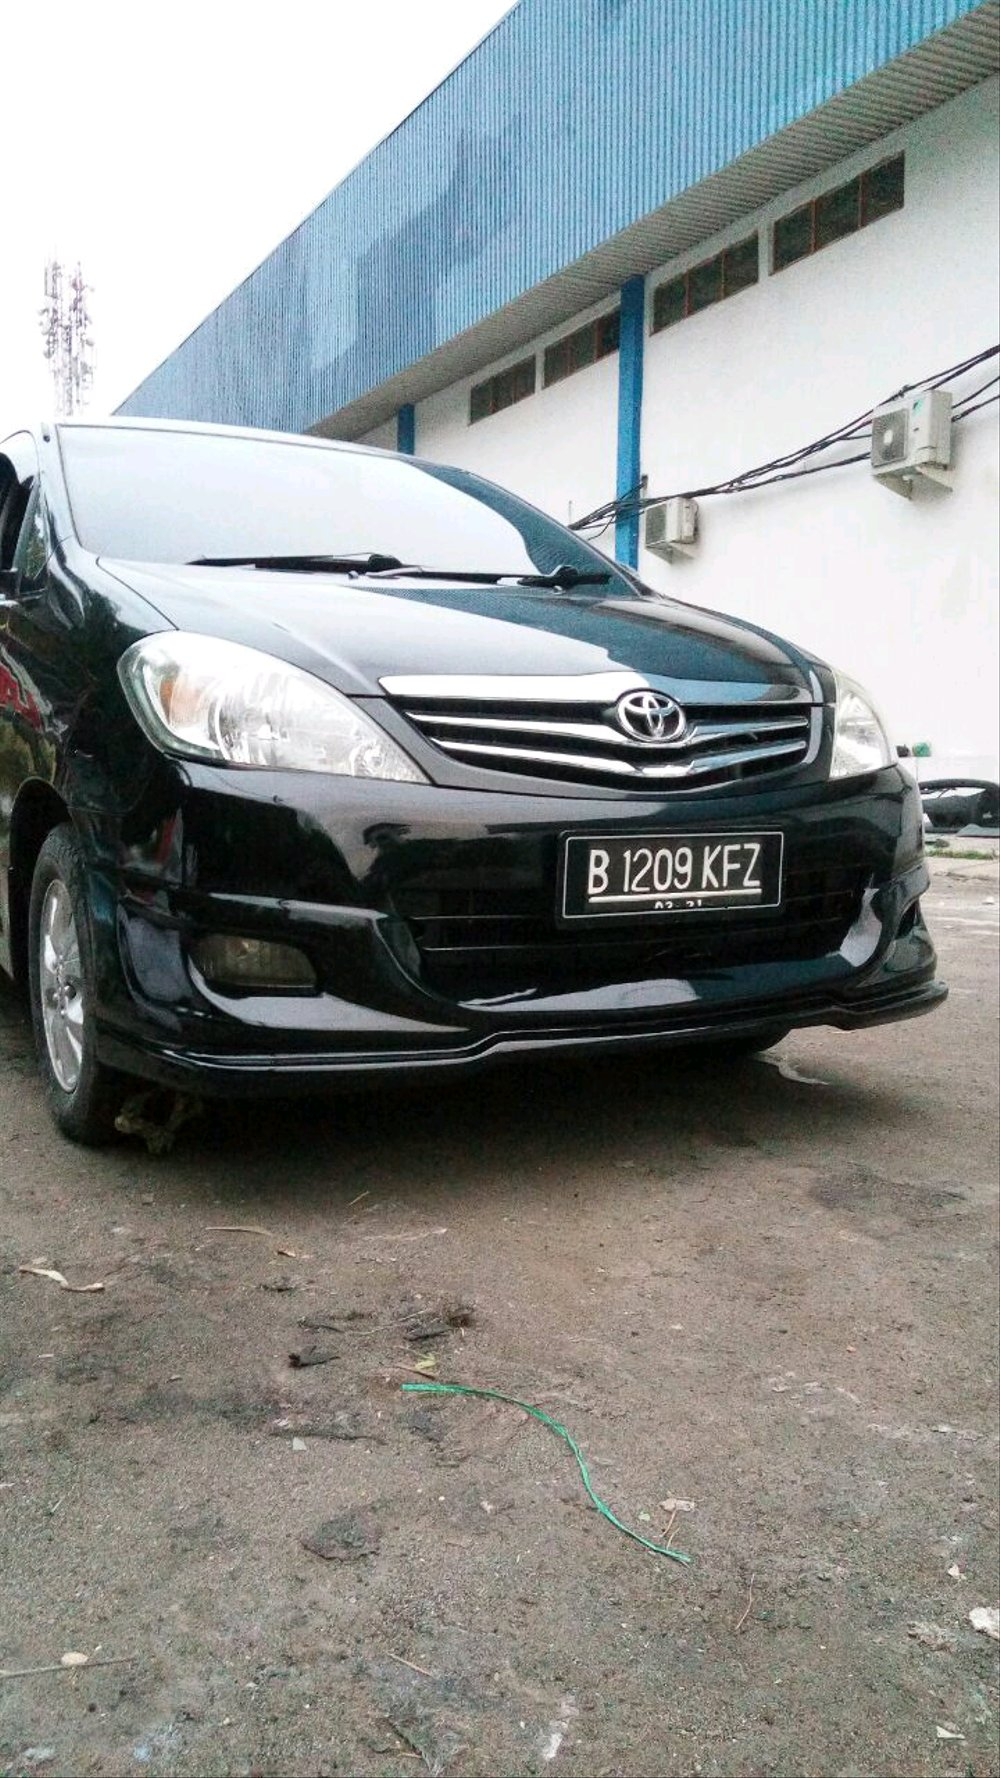 bodykit all new kijang innova review grand avanza 2017 jual airmaster 2008 2011 di lapak topkitt sutopo30